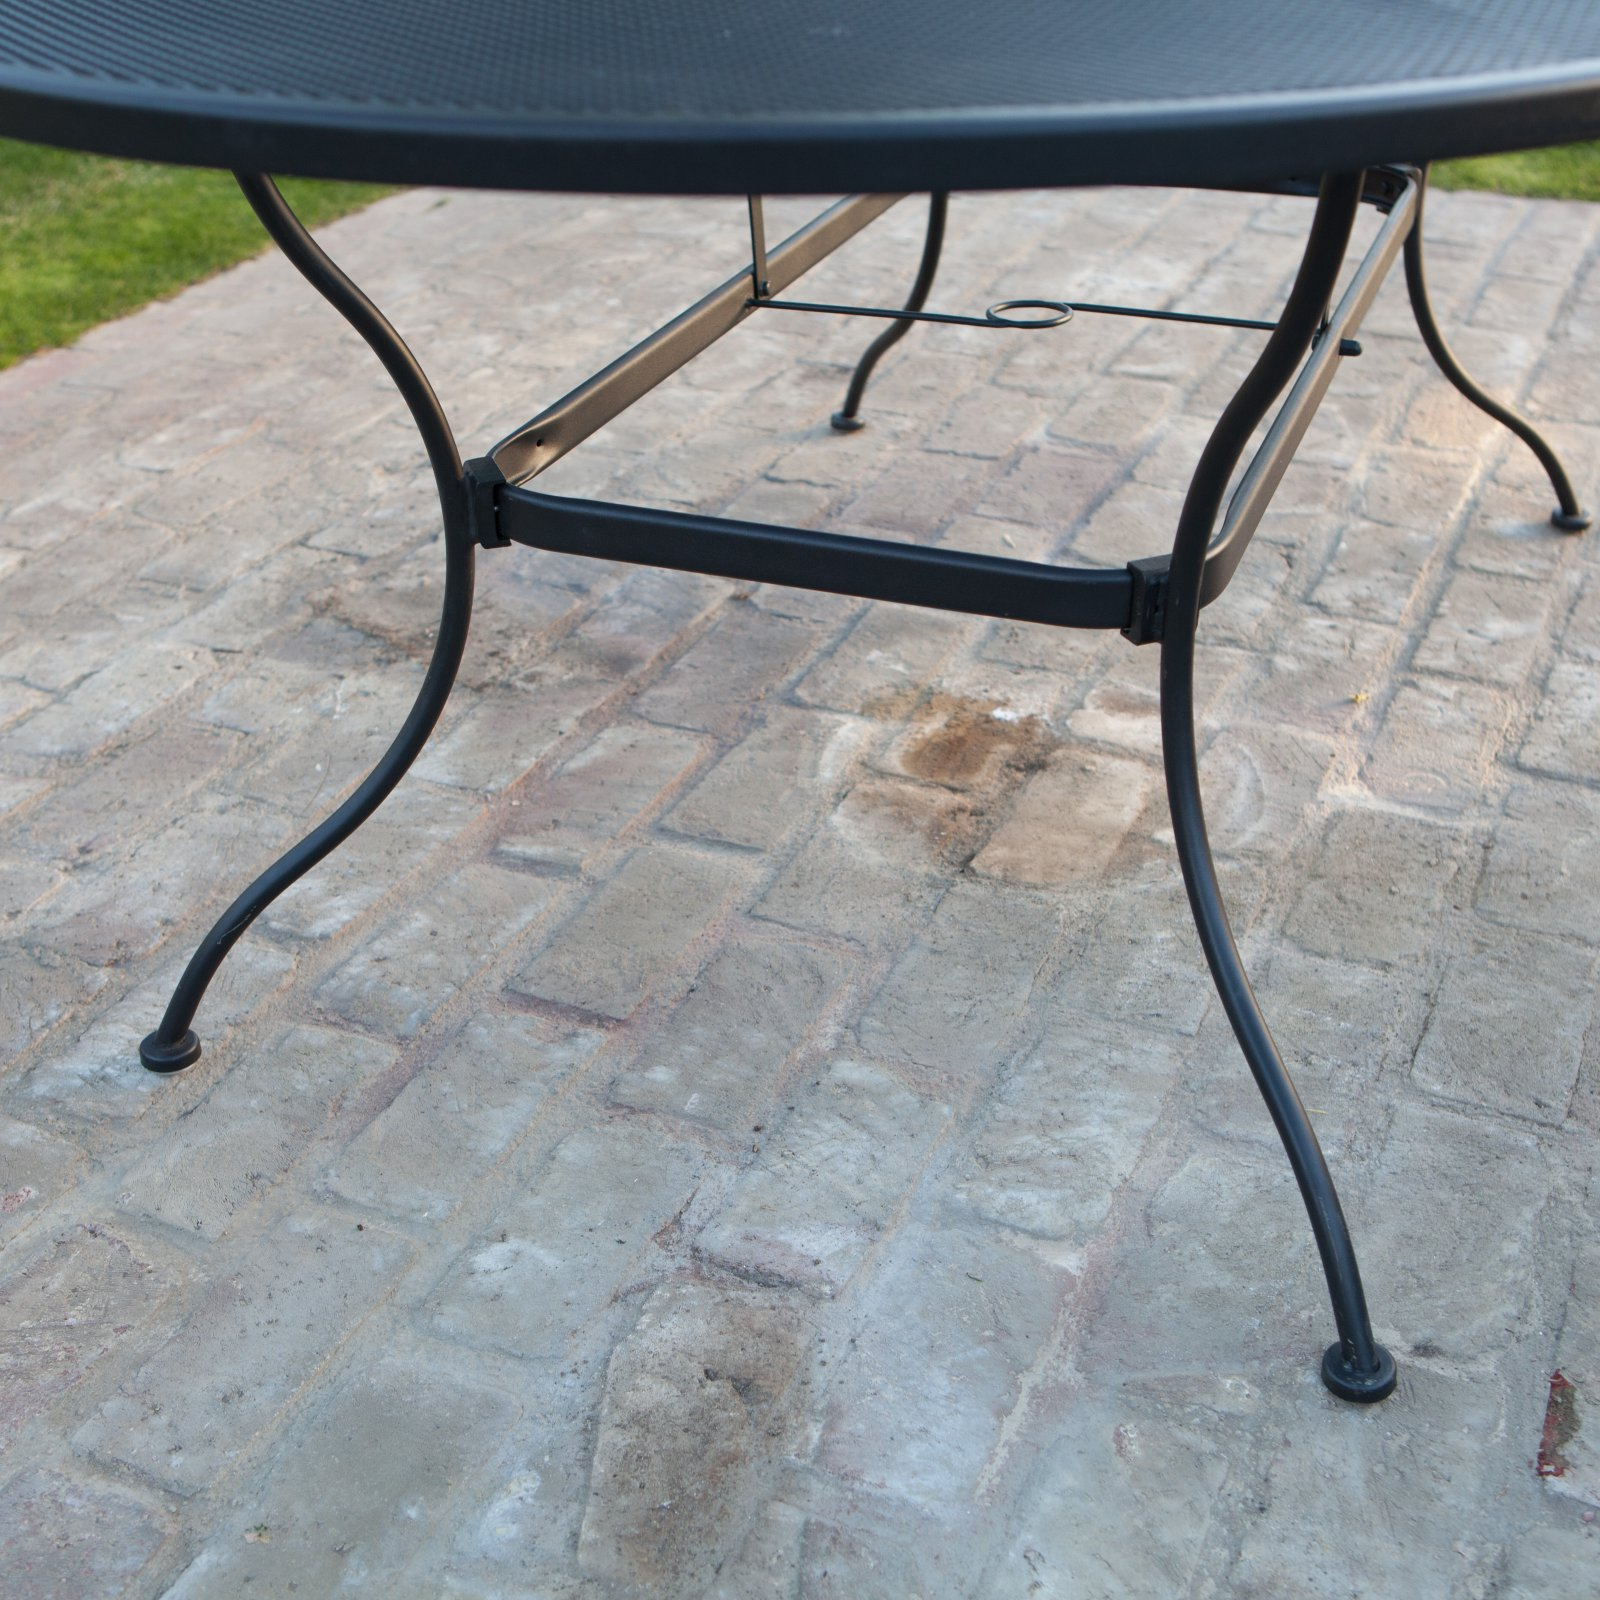 b895565a71a44 Belham Living Stanton 42 x 72 in. Oval Wrought Iron Patio Dining Table by  Woodard - Textured Black - Walmart.com